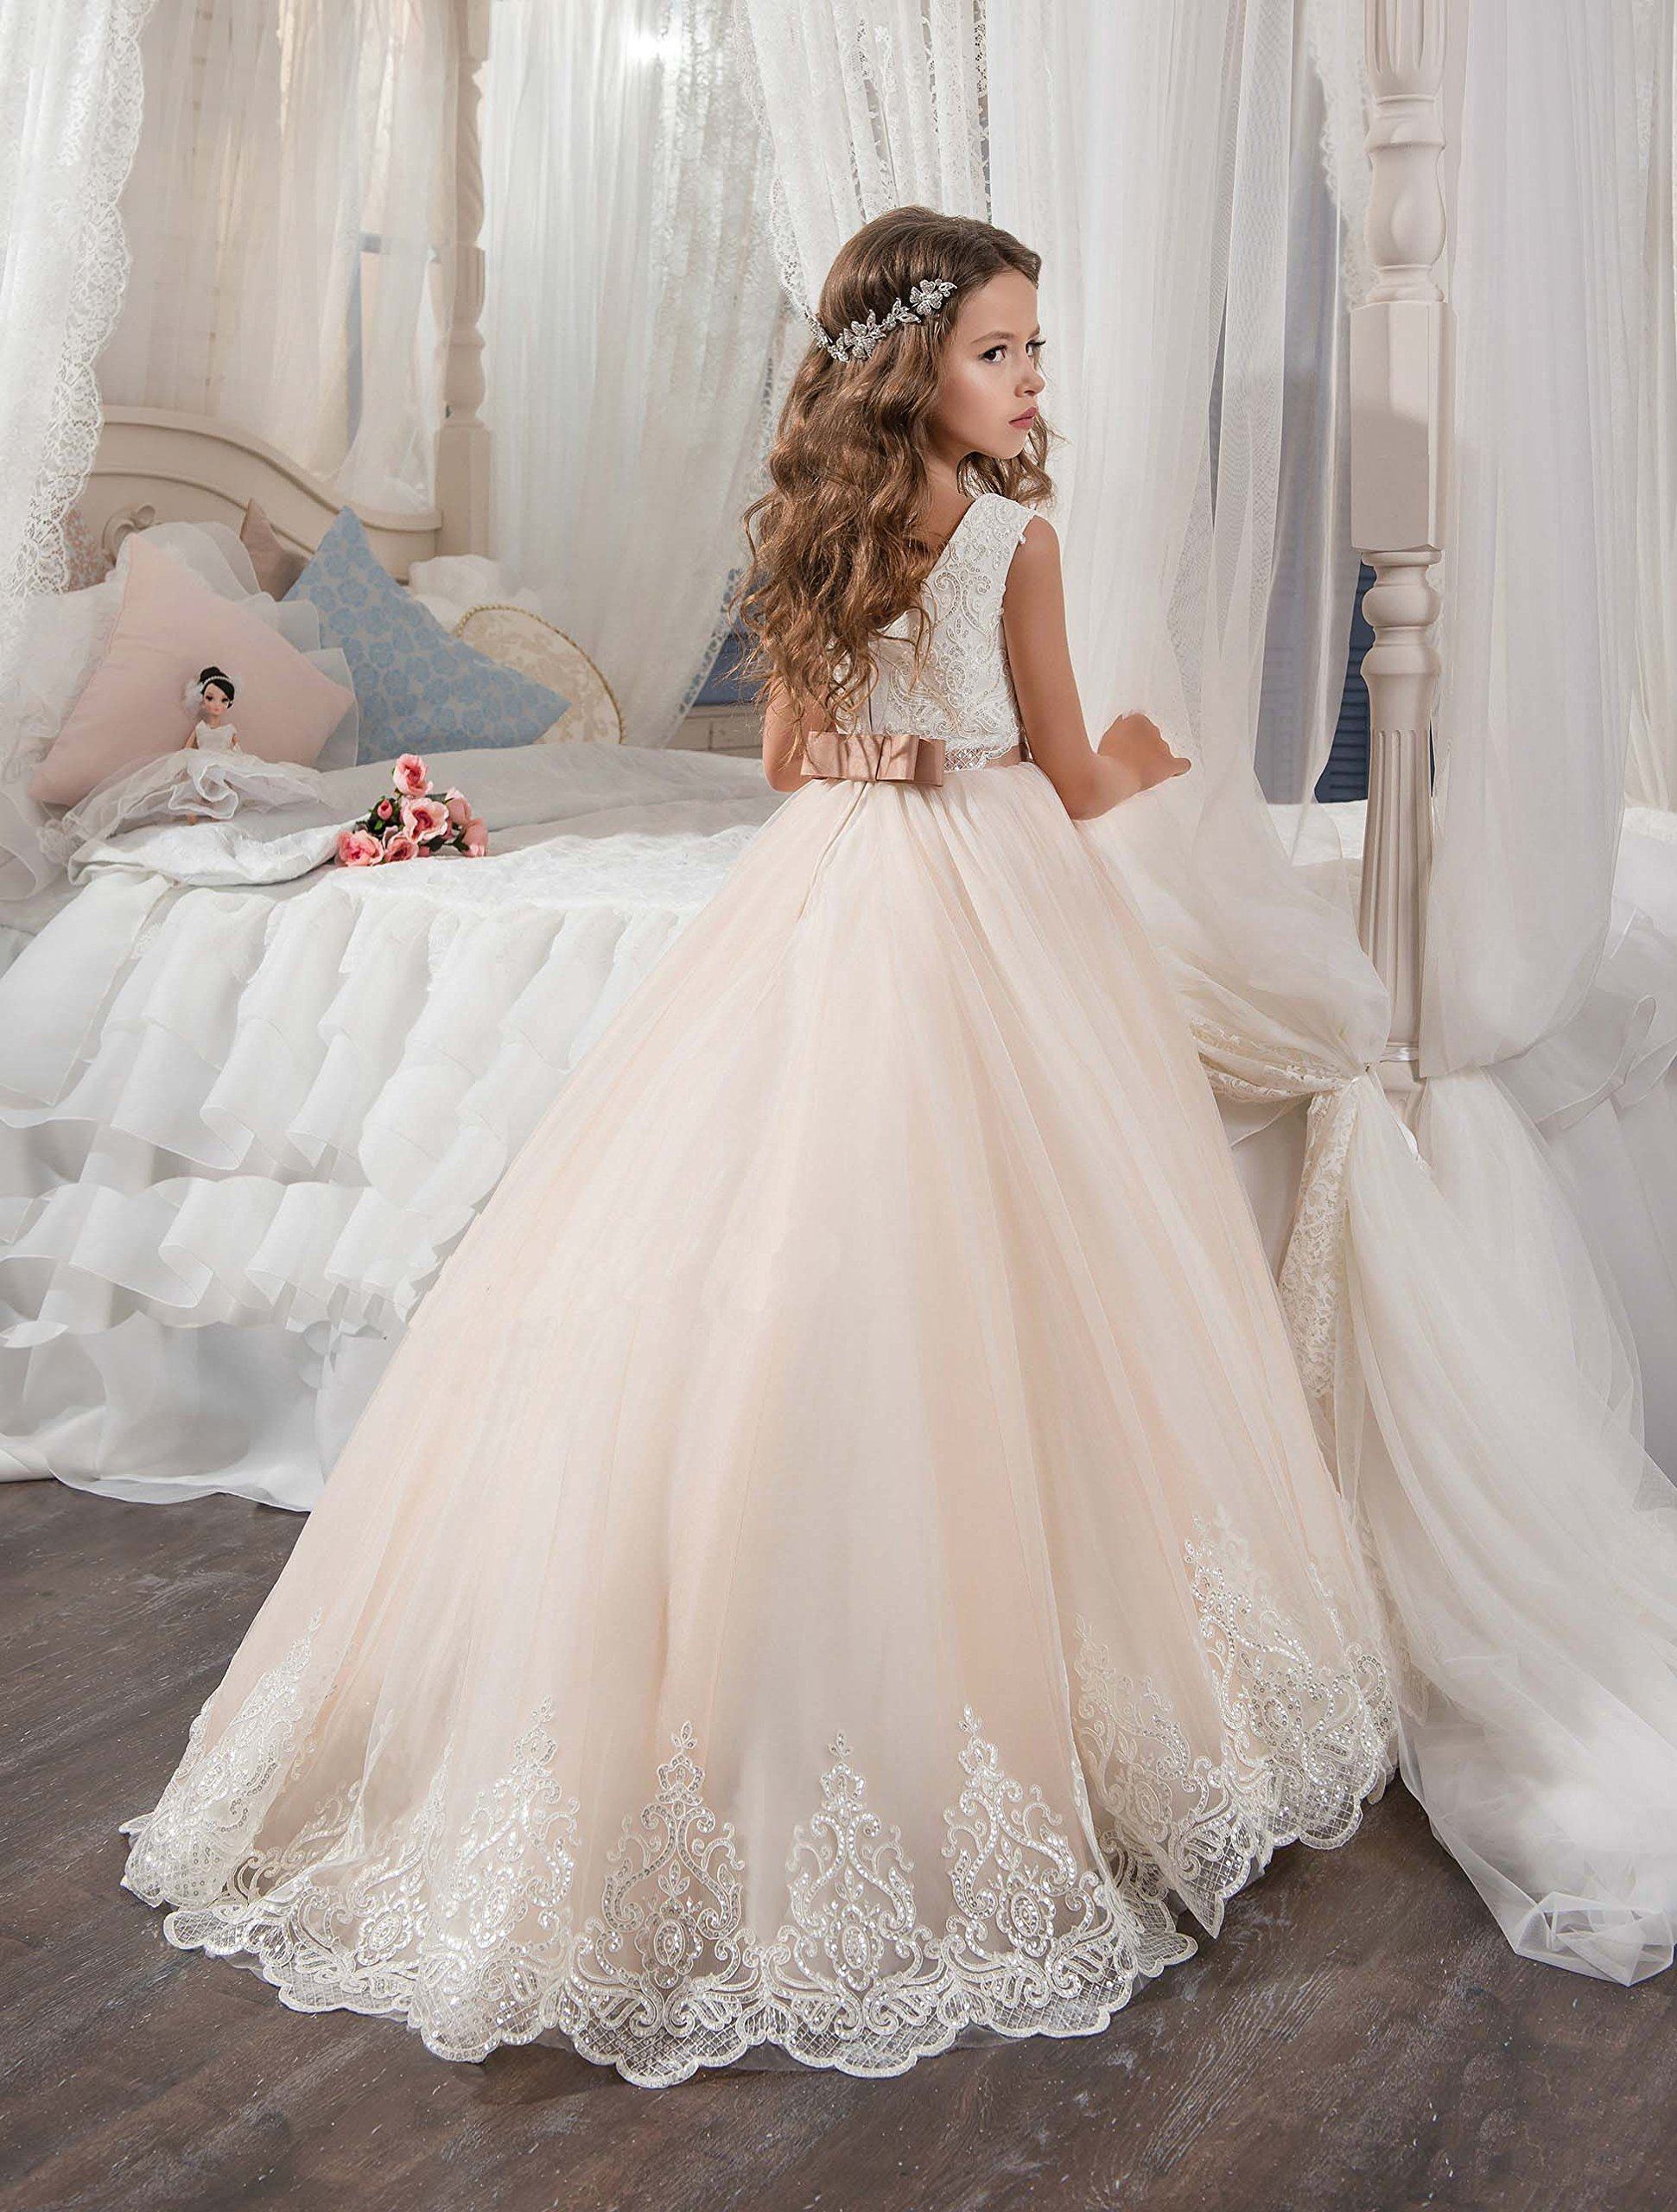 KissAngel Ivory Long Lace Flower Girl Dresses Champagne Less Party Dress (2, Ivory &Champagne) by KissAngel (Image #3)